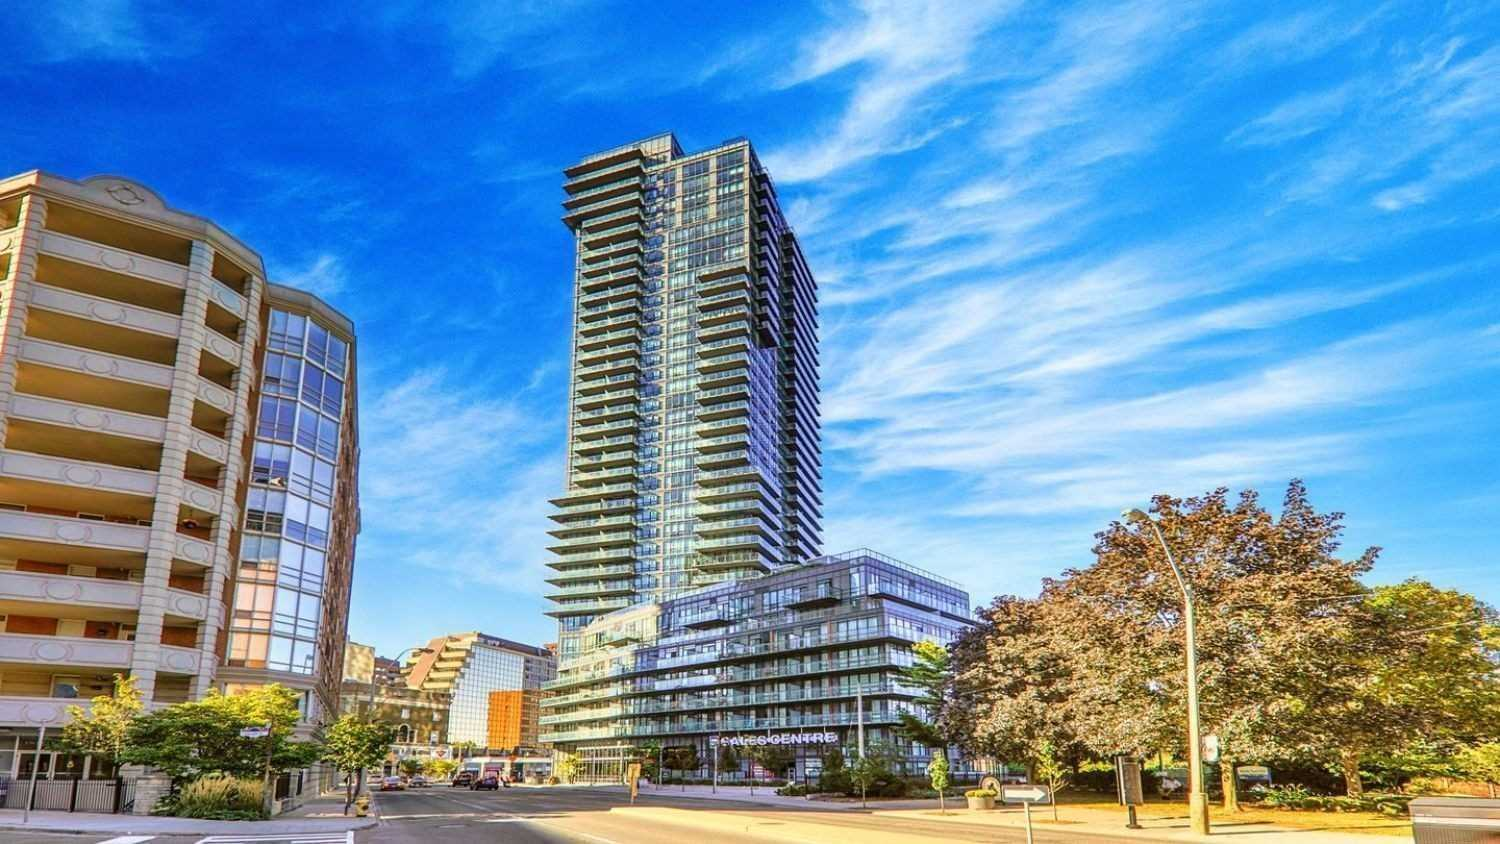 The Milan At 825 Church St 10 Condos For Sale 8 Units For Rent Strata Ca